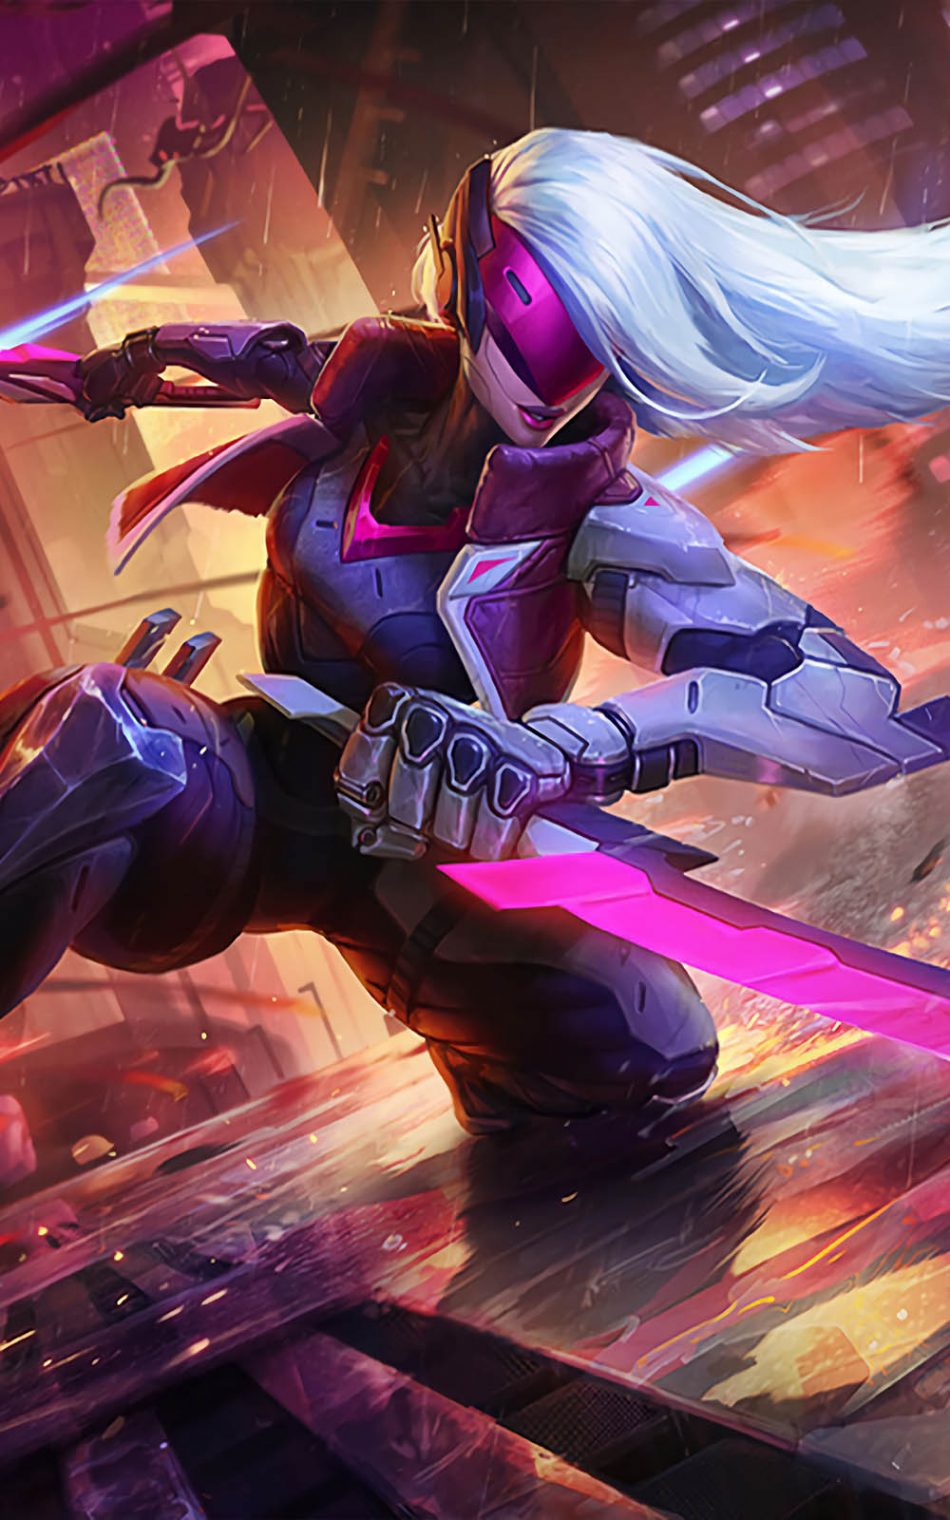 Download Katarina League of Legends Free Pure 4K Ultra HD Mobile Wallpaper